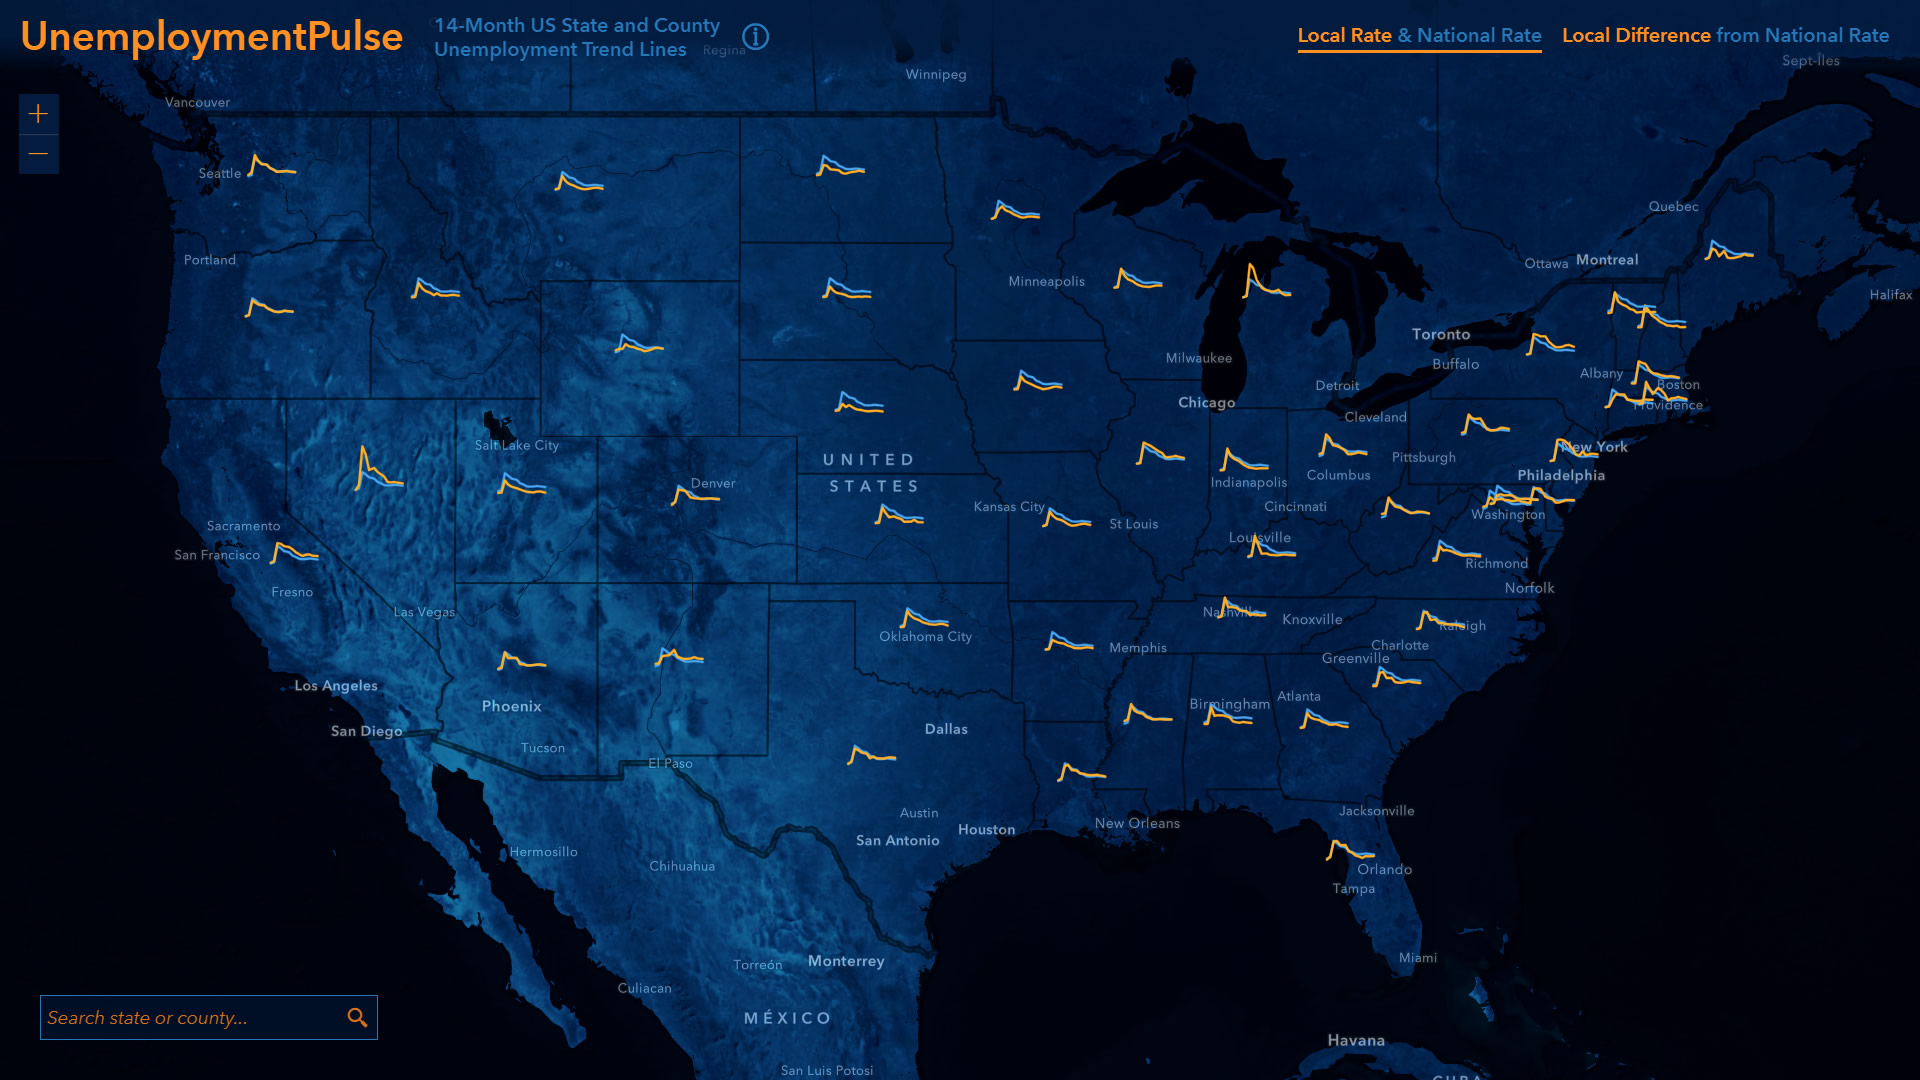 UnemploymentPulse tracks state and local rates of unemployment through time.